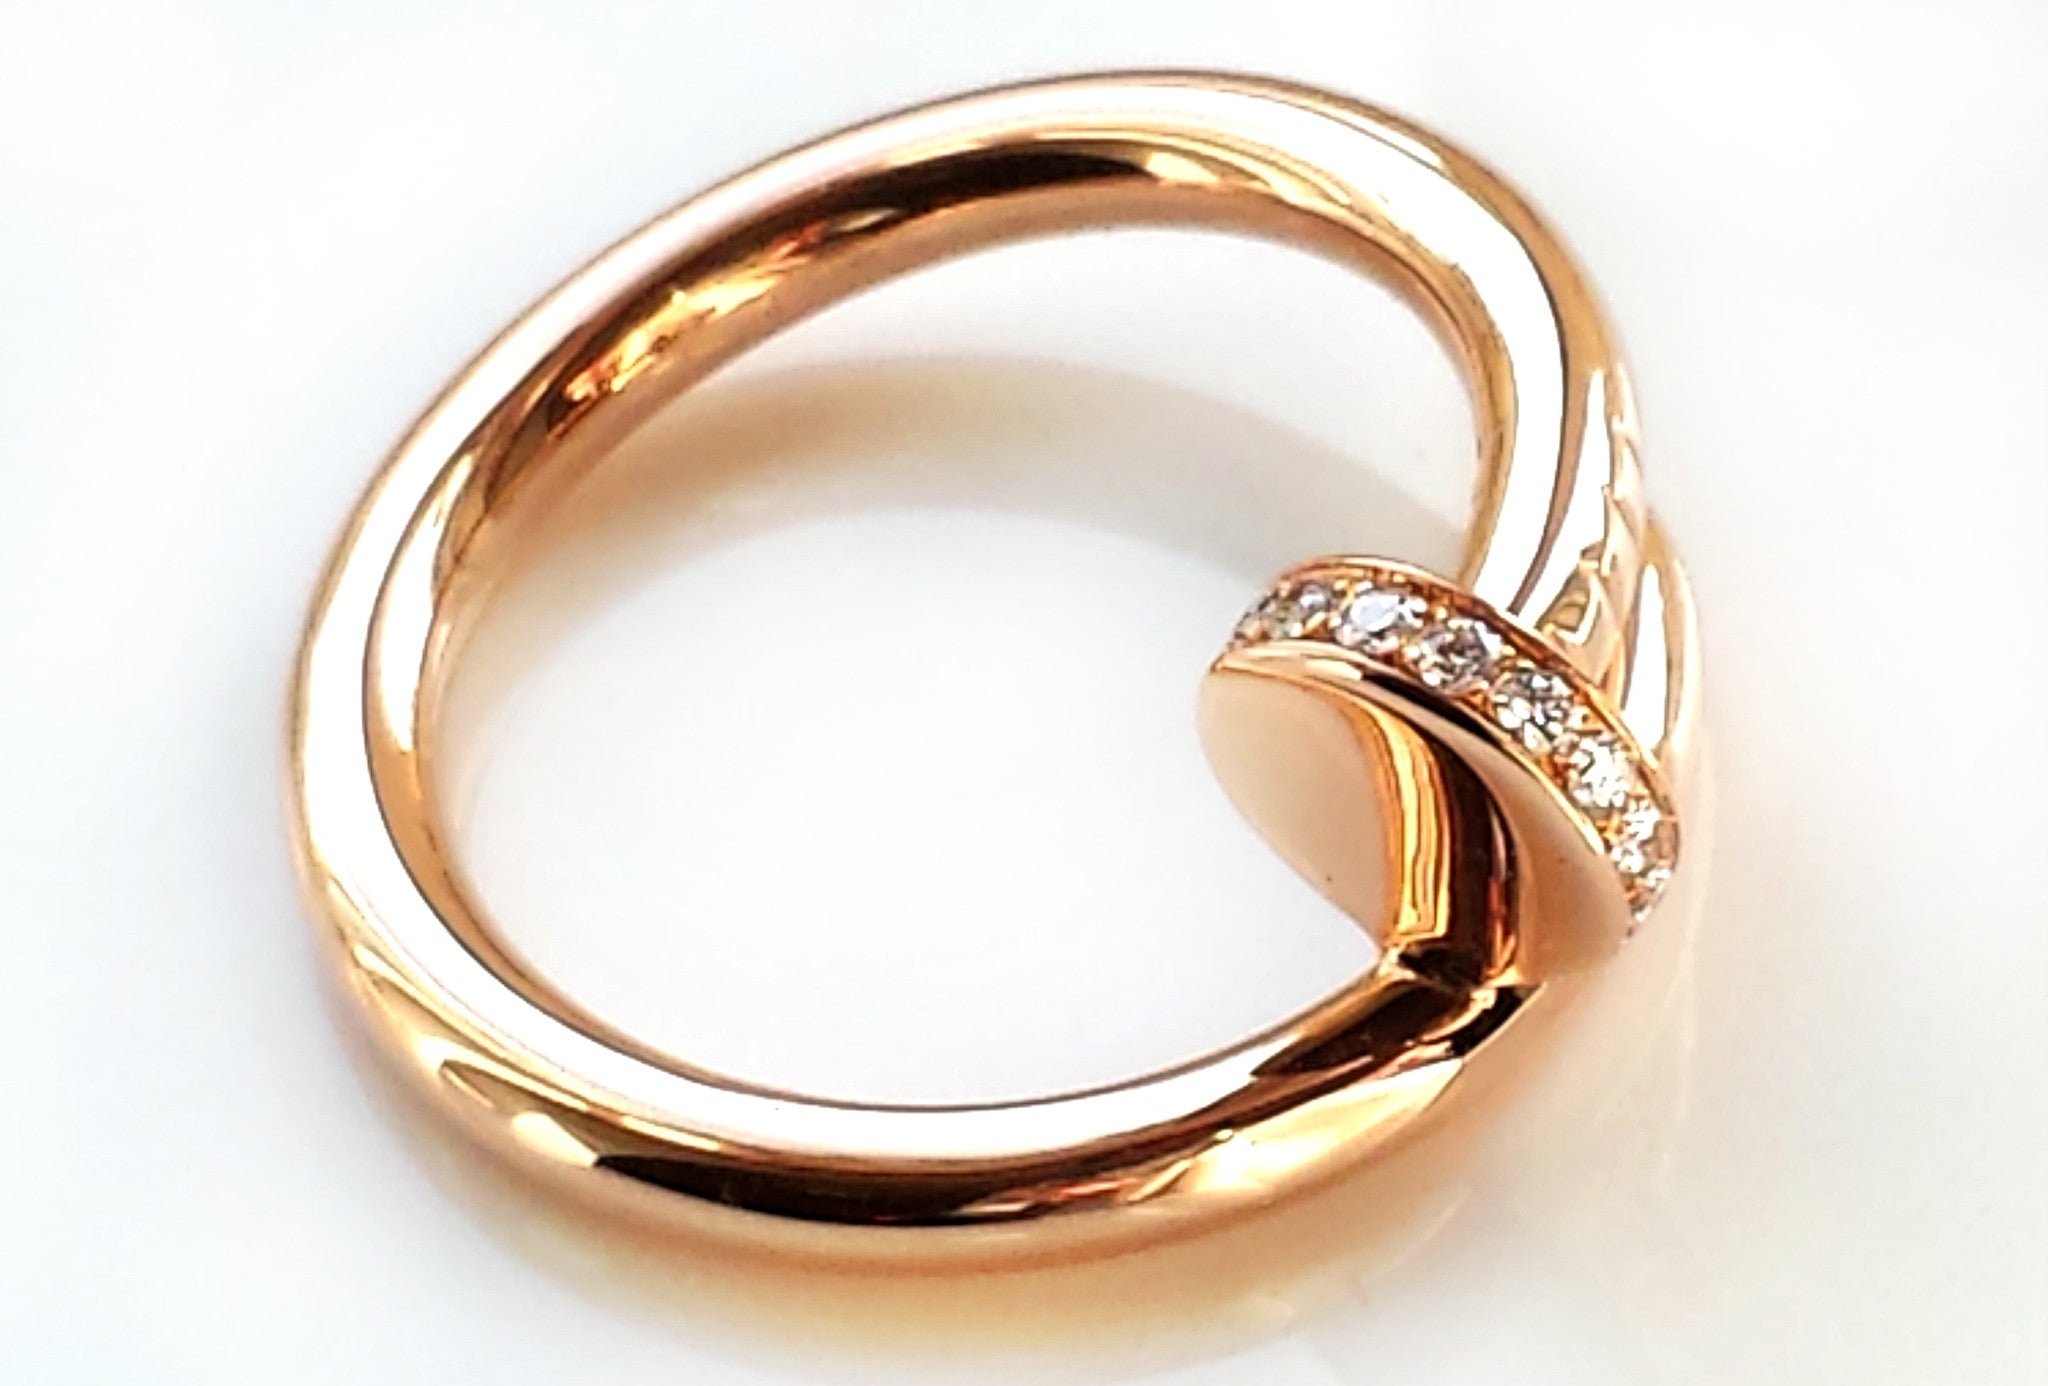 c2e1798903aee Cartier 18k Rose / Pink Gold & Diamond 'Juste Un Clou' Ring, Size 53